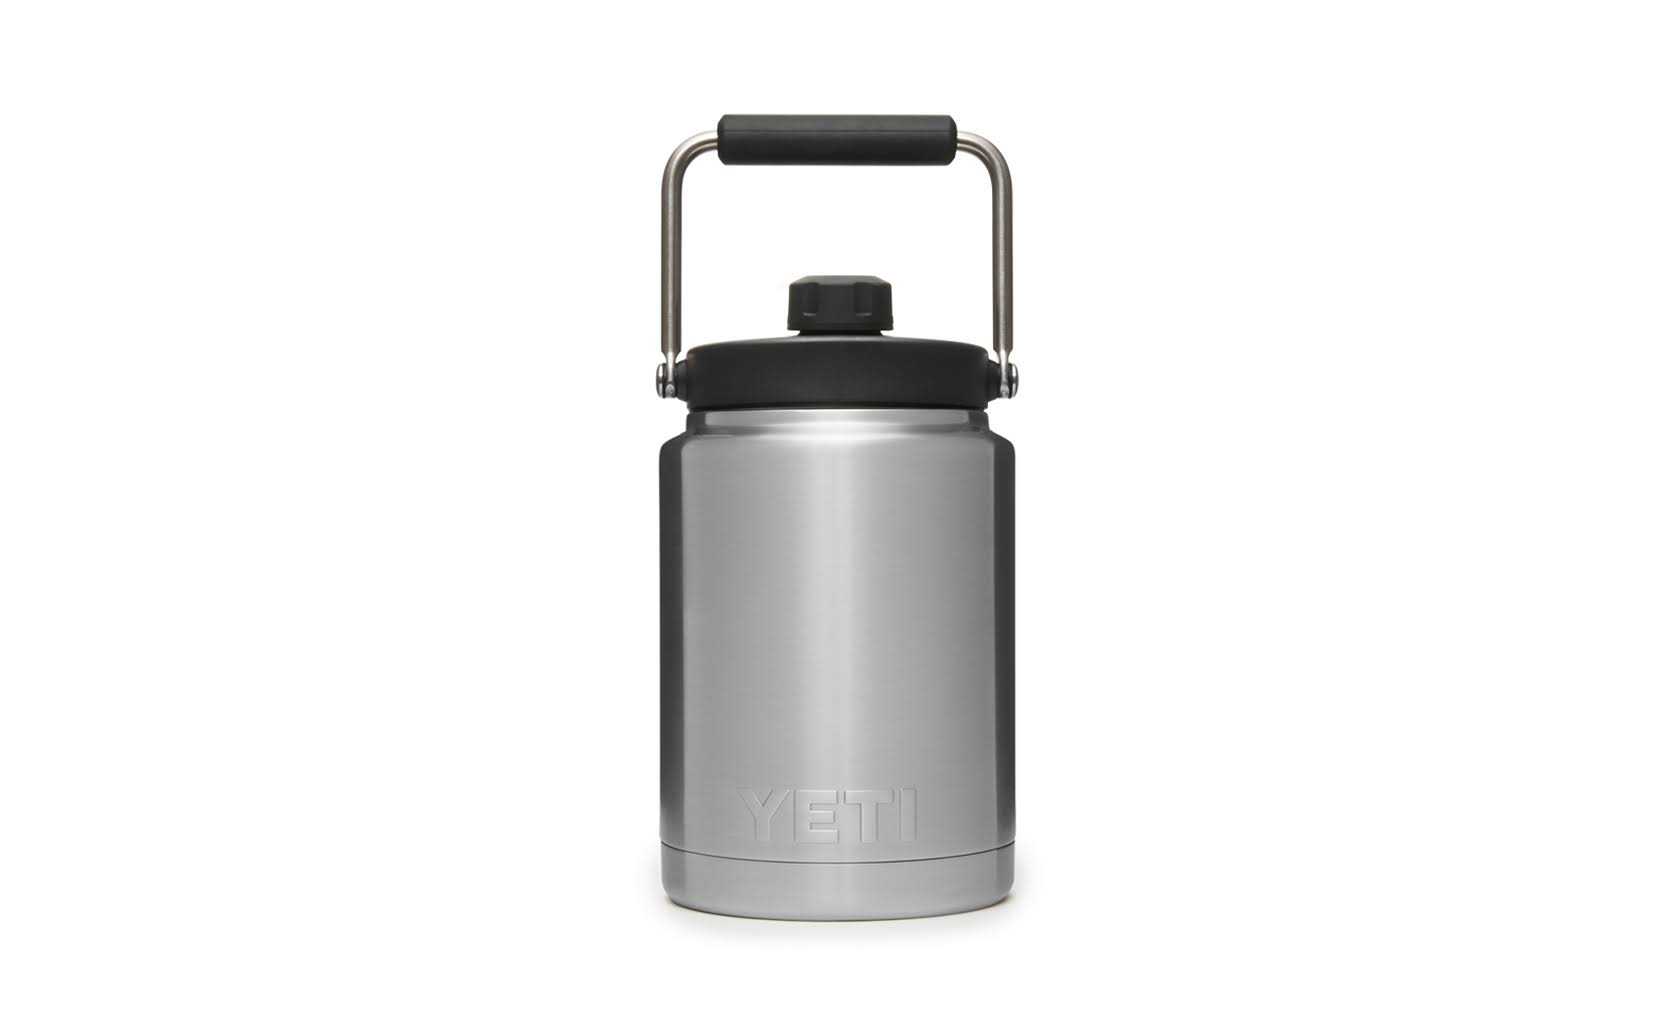 Yeti Rambler Vacuum Insulated Half Gallon Jug - Stainless Steel, with Jug Mount